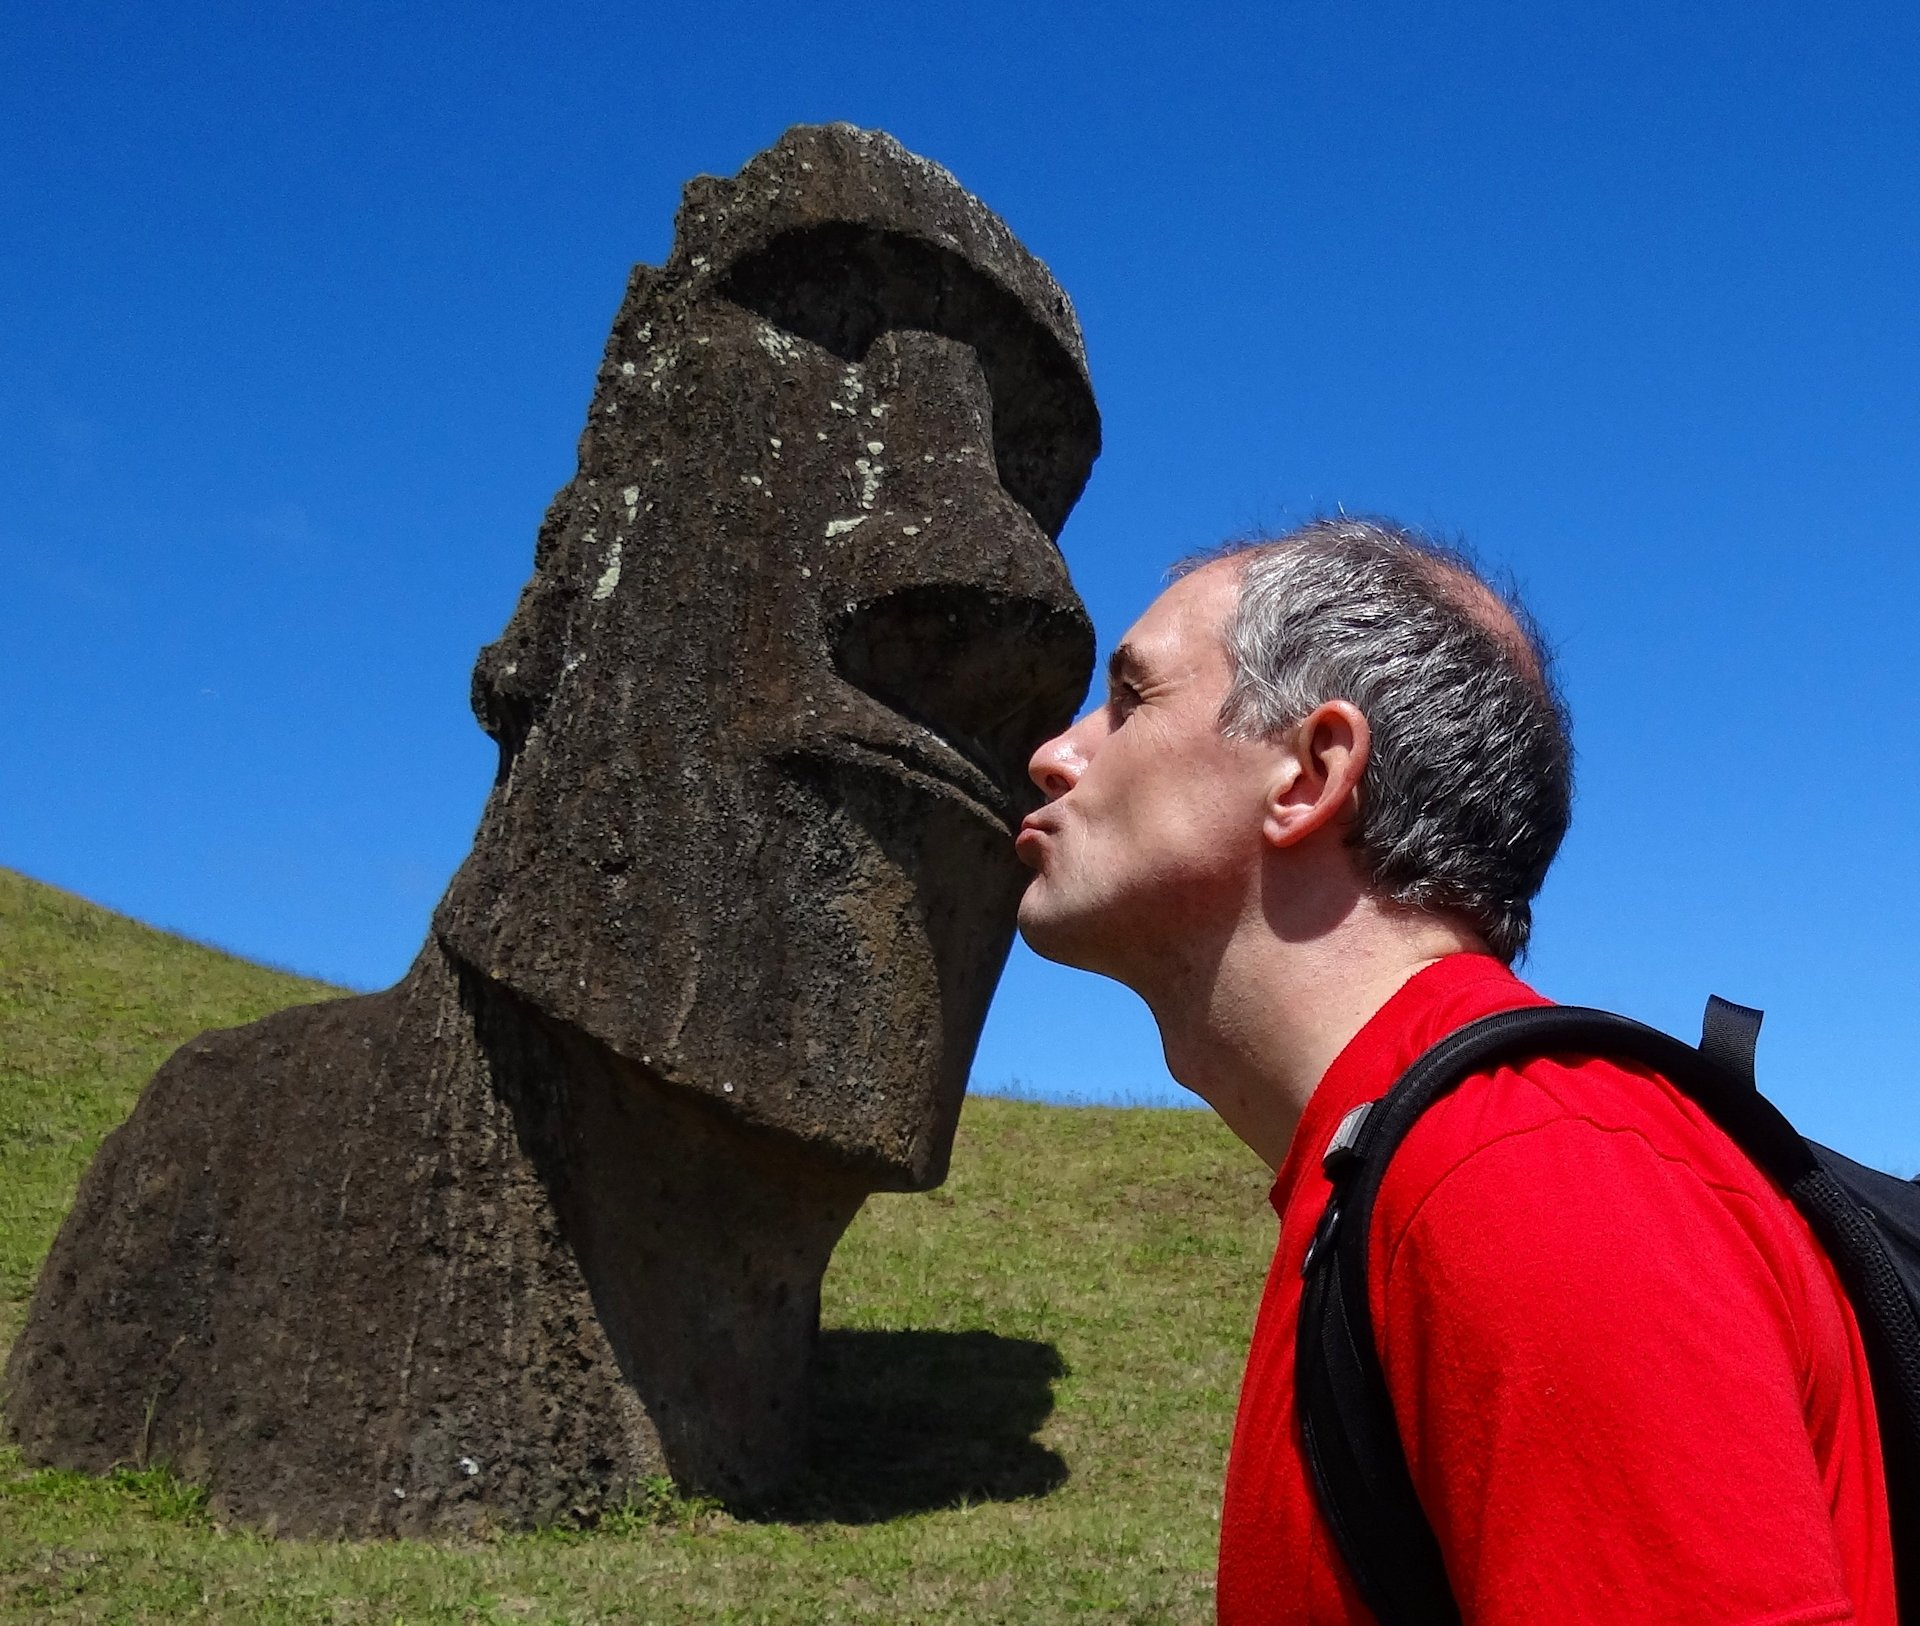 Everyone knows that Moai can walk, but did you know they are great kissers?